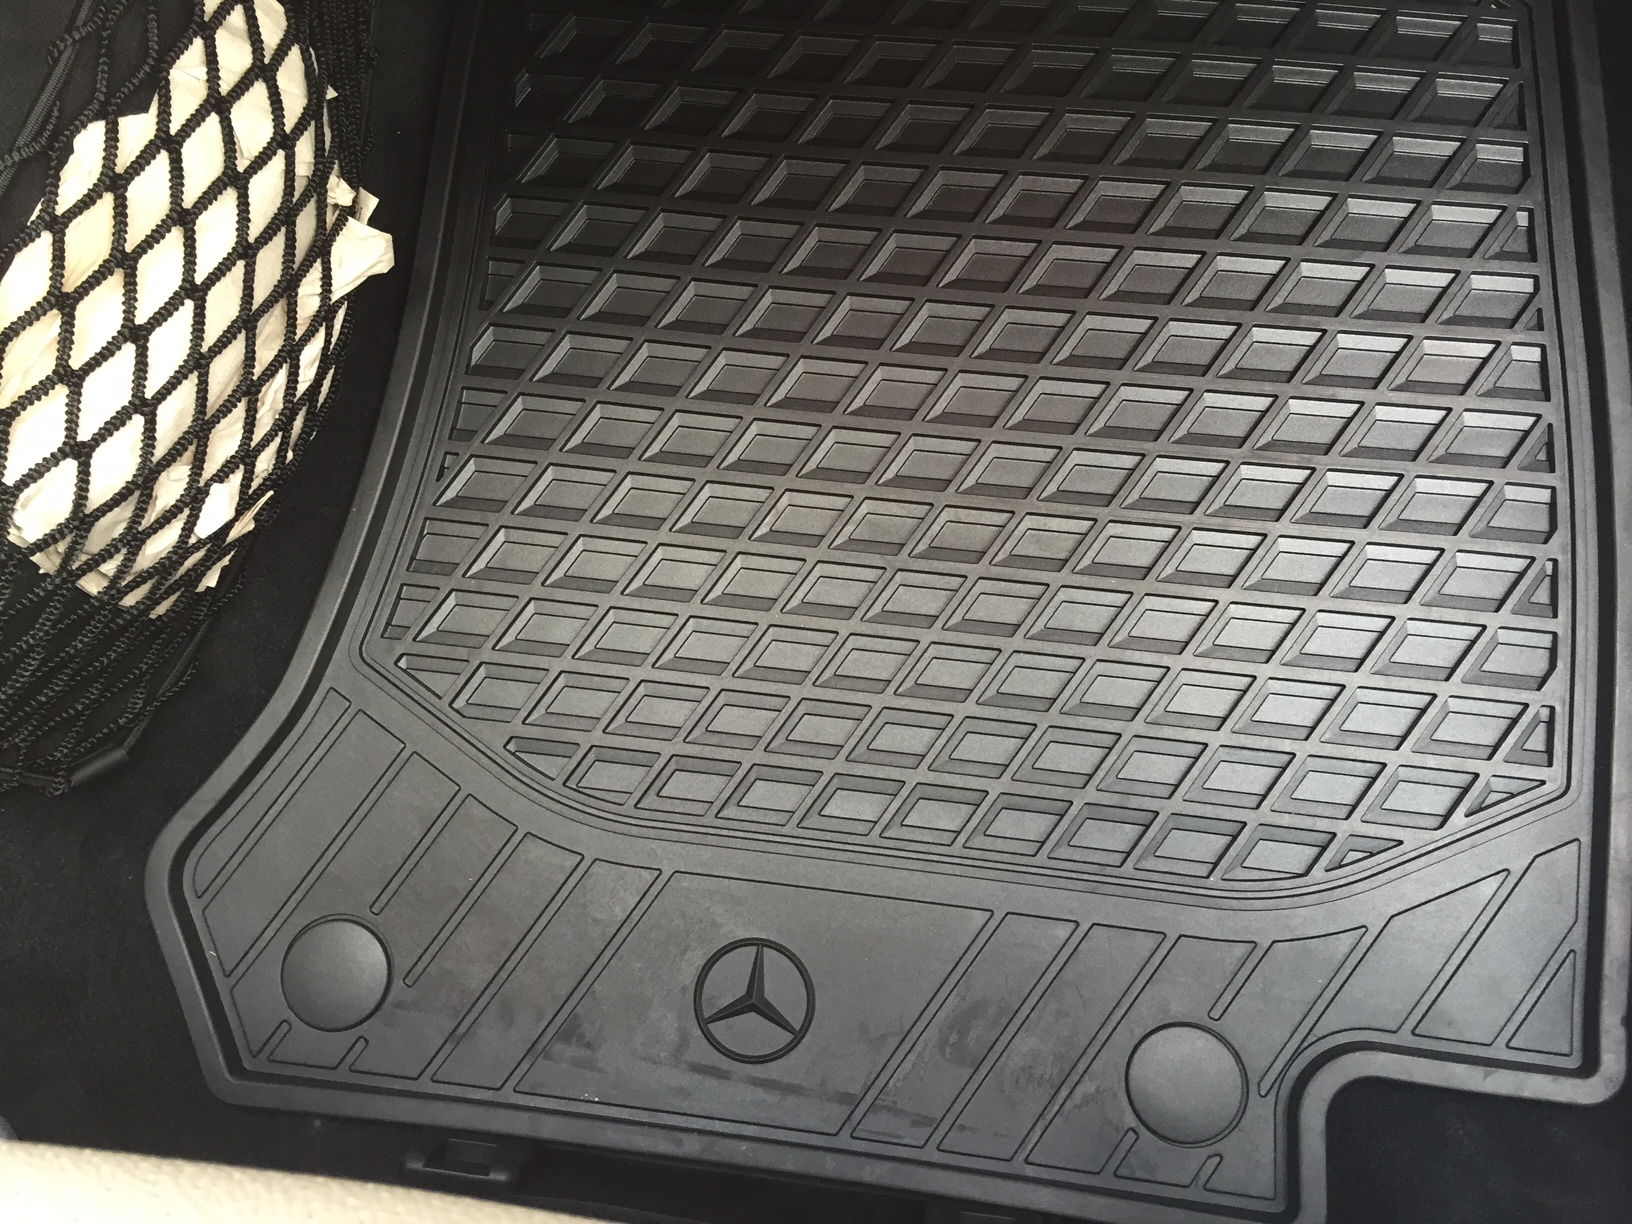 Floor mats mercedes - Carpeted Floor Mats Are Standard In The Us Mercedes Does Offer All Season Mats Specifically For The Glc Here S A Picture Of The Mb All Season Mats In Our